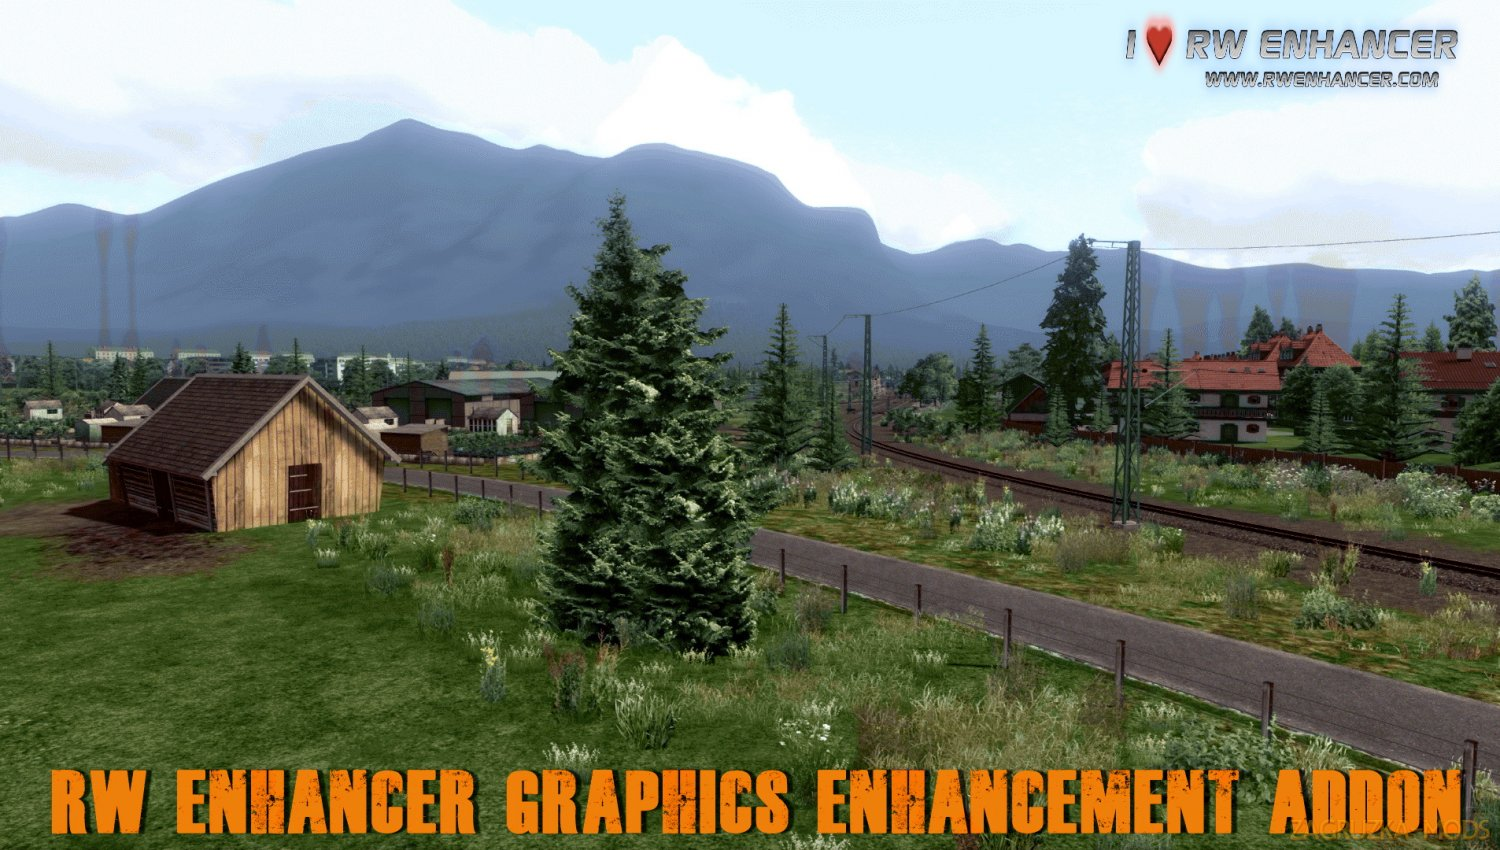 RW Enhancer Graphics Enhancement Addon v1.0 for TS 2019